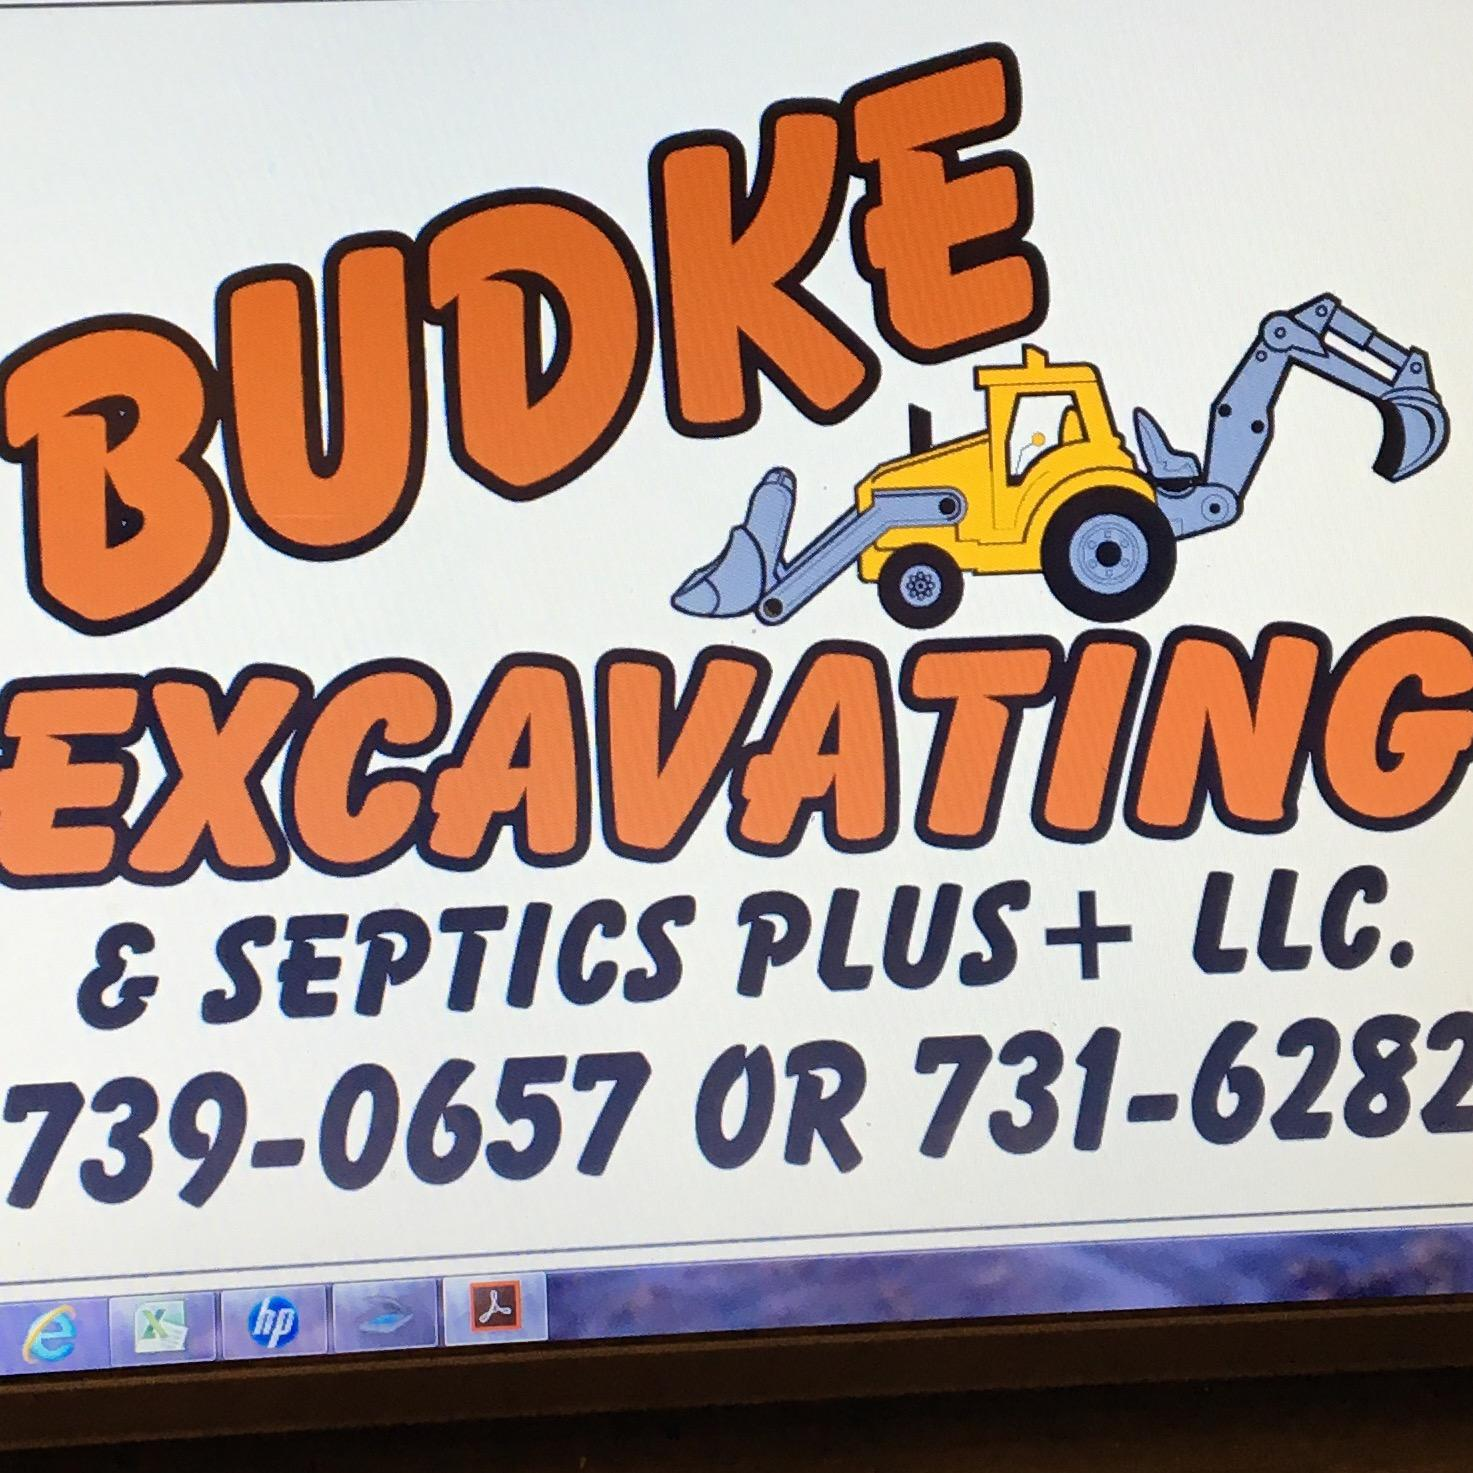 Plumber in MN Erhard 56534 Budke Excavating & Septic Plus 32873 whispering springs loop  (218)739-0657